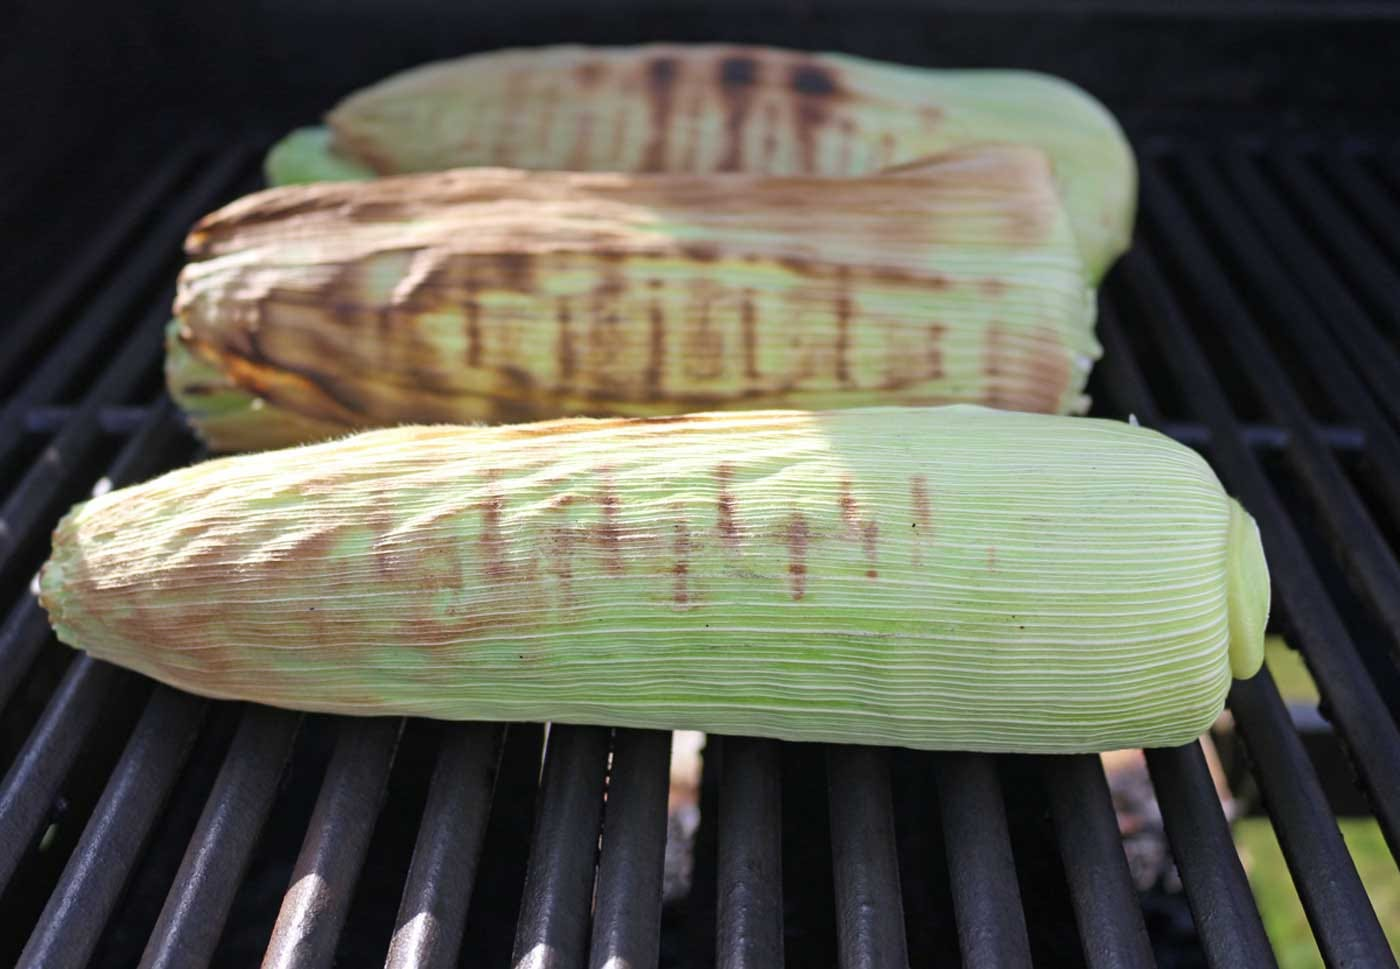 Grilling corn on the cob with the husk on.